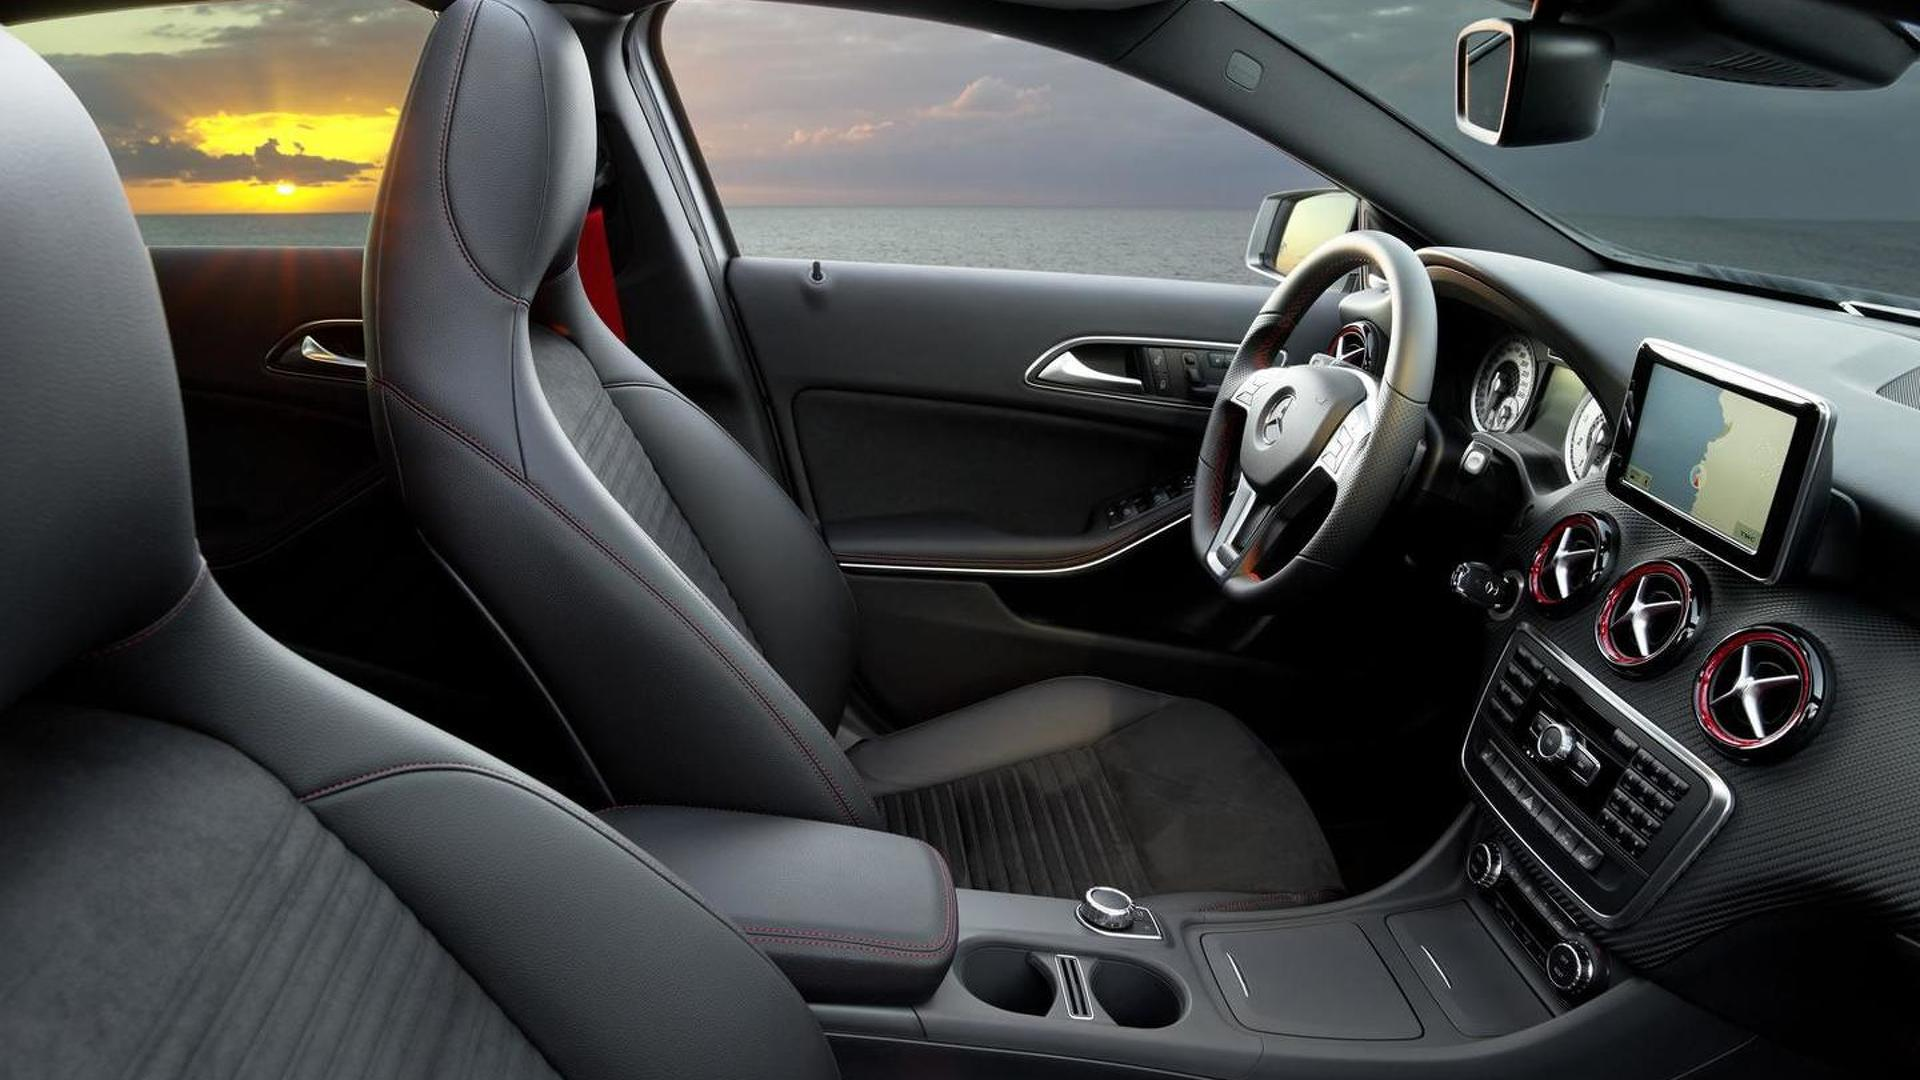 2013 Mercedes A-class officially revealed [video]